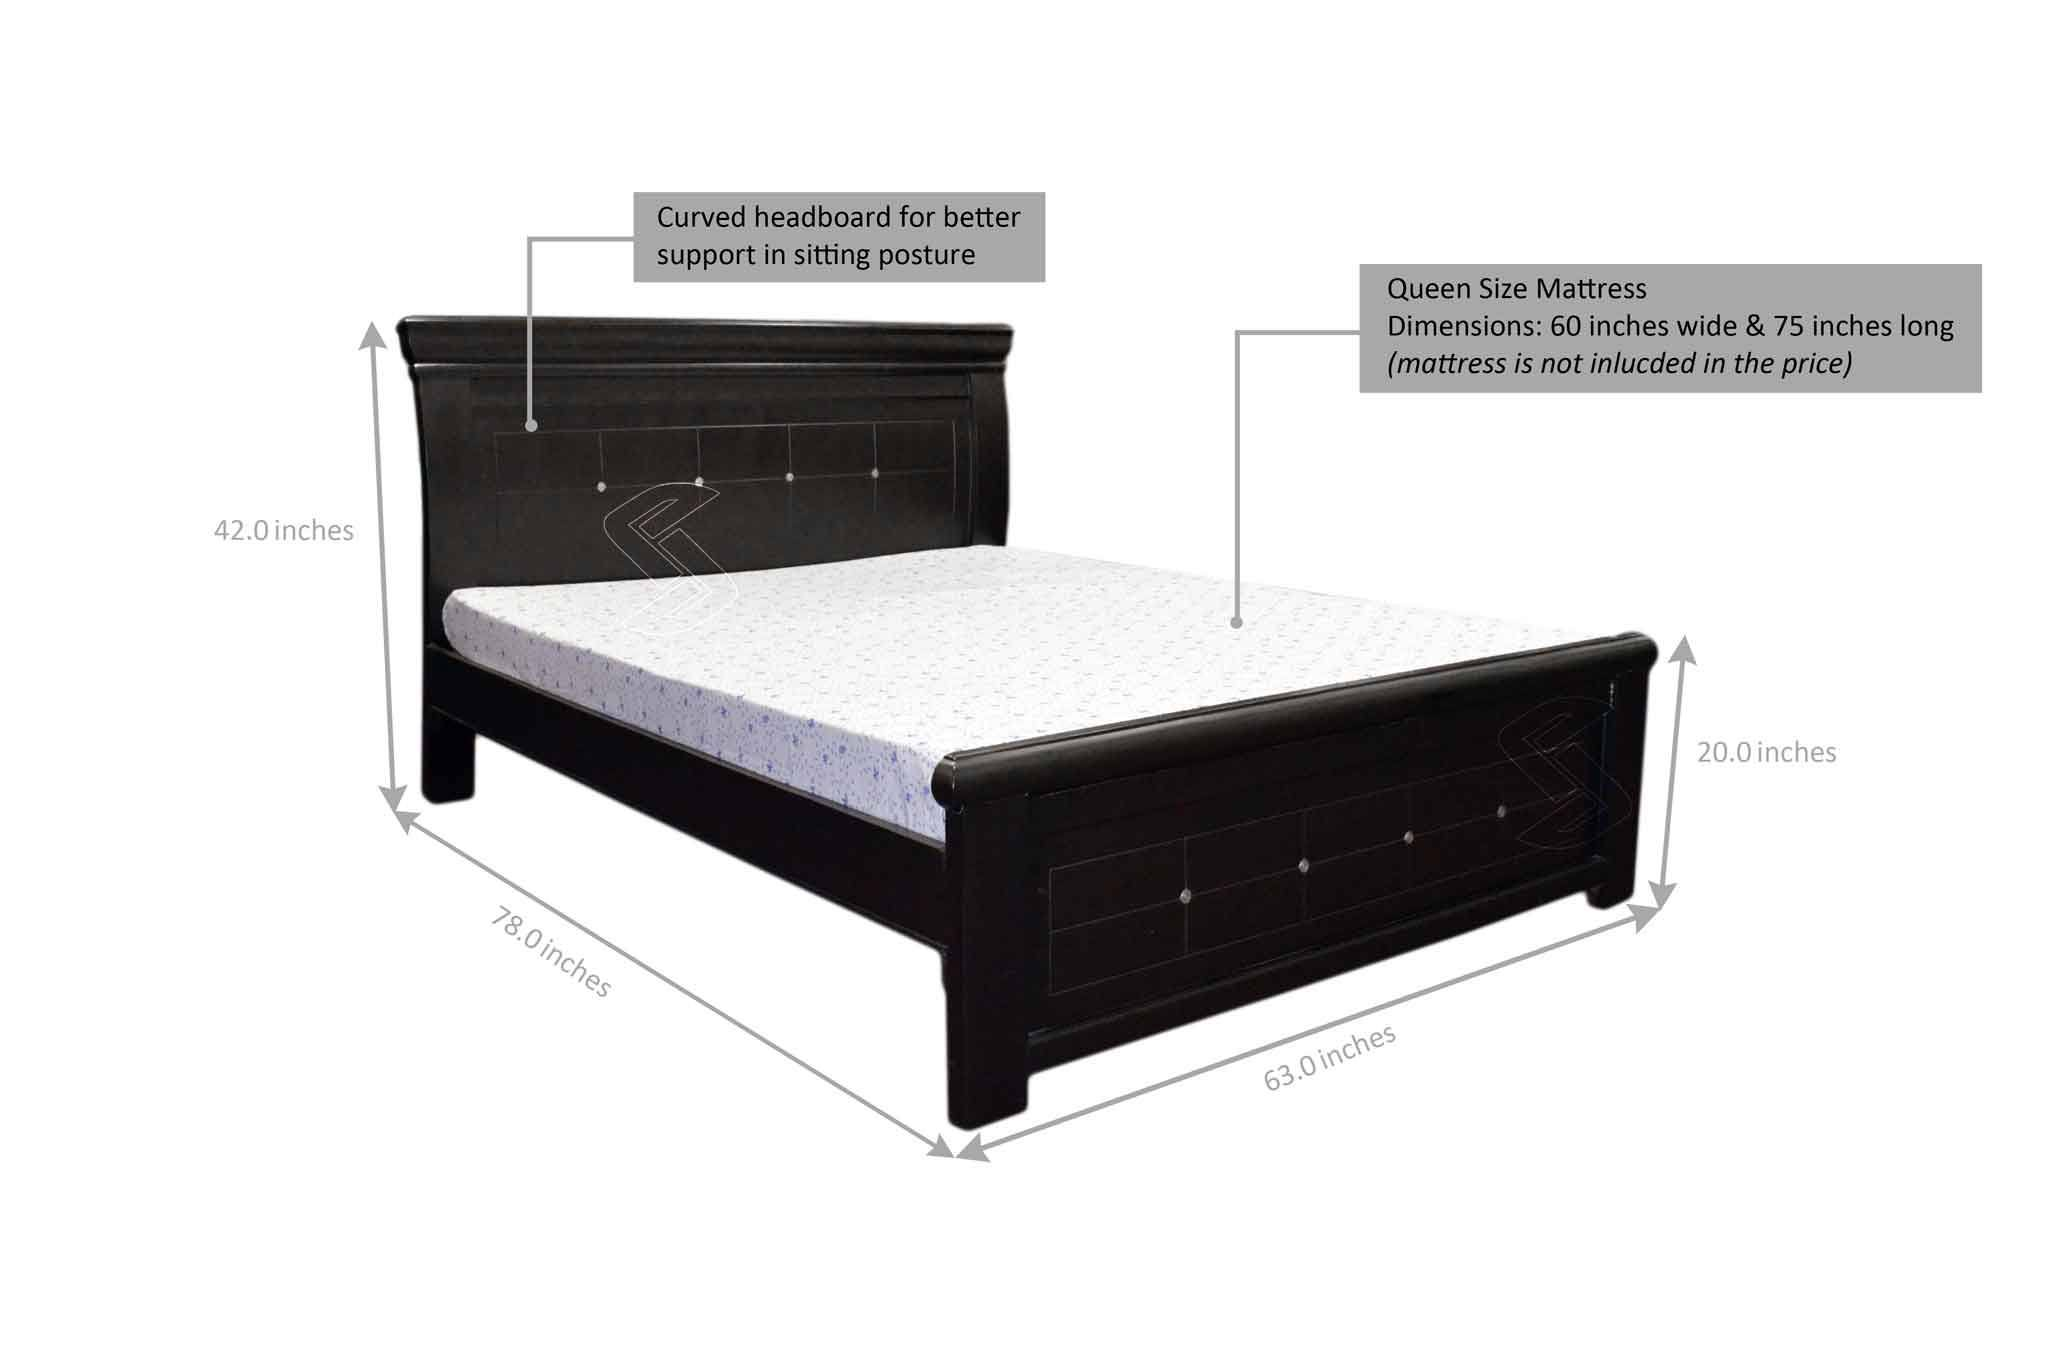 zordo queen bed (dark brown) - beds online in hyderabad - sanfurn